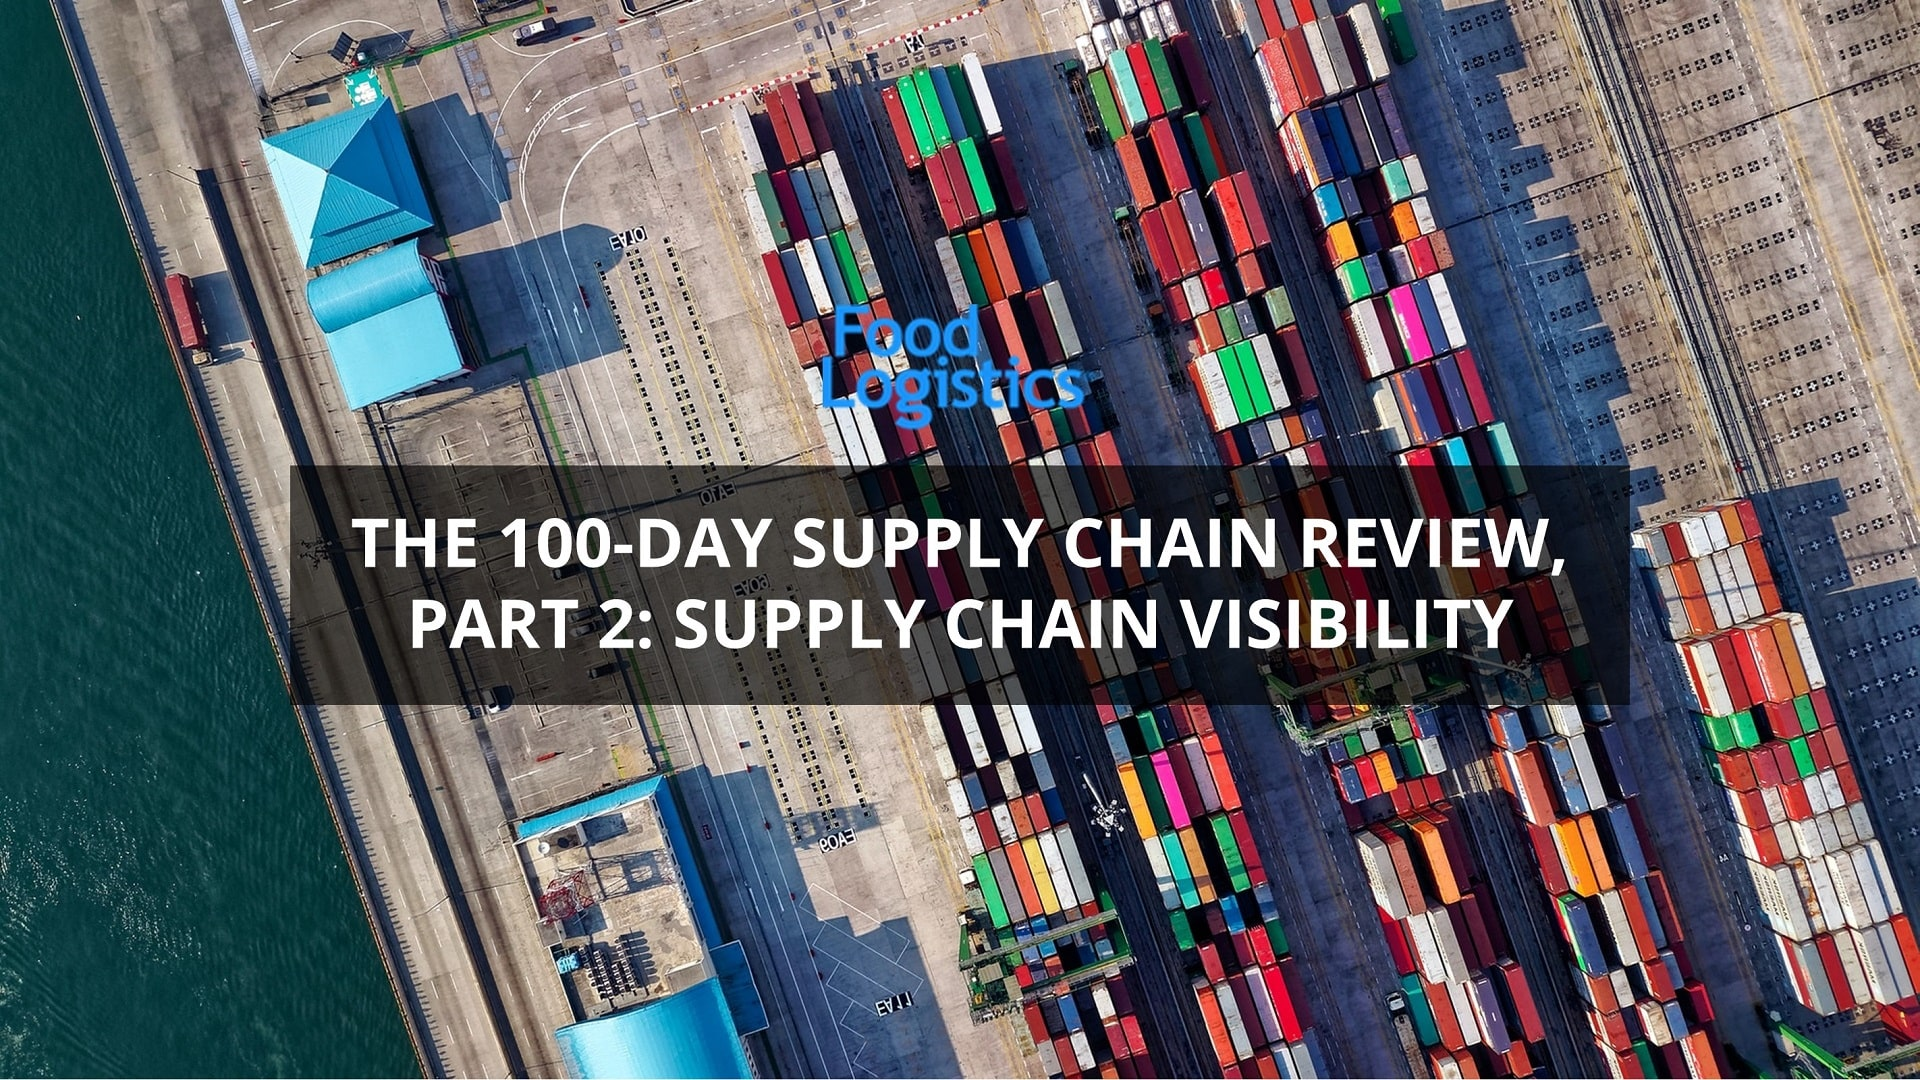 US Supply Chain Review - Supply Chain Visibility